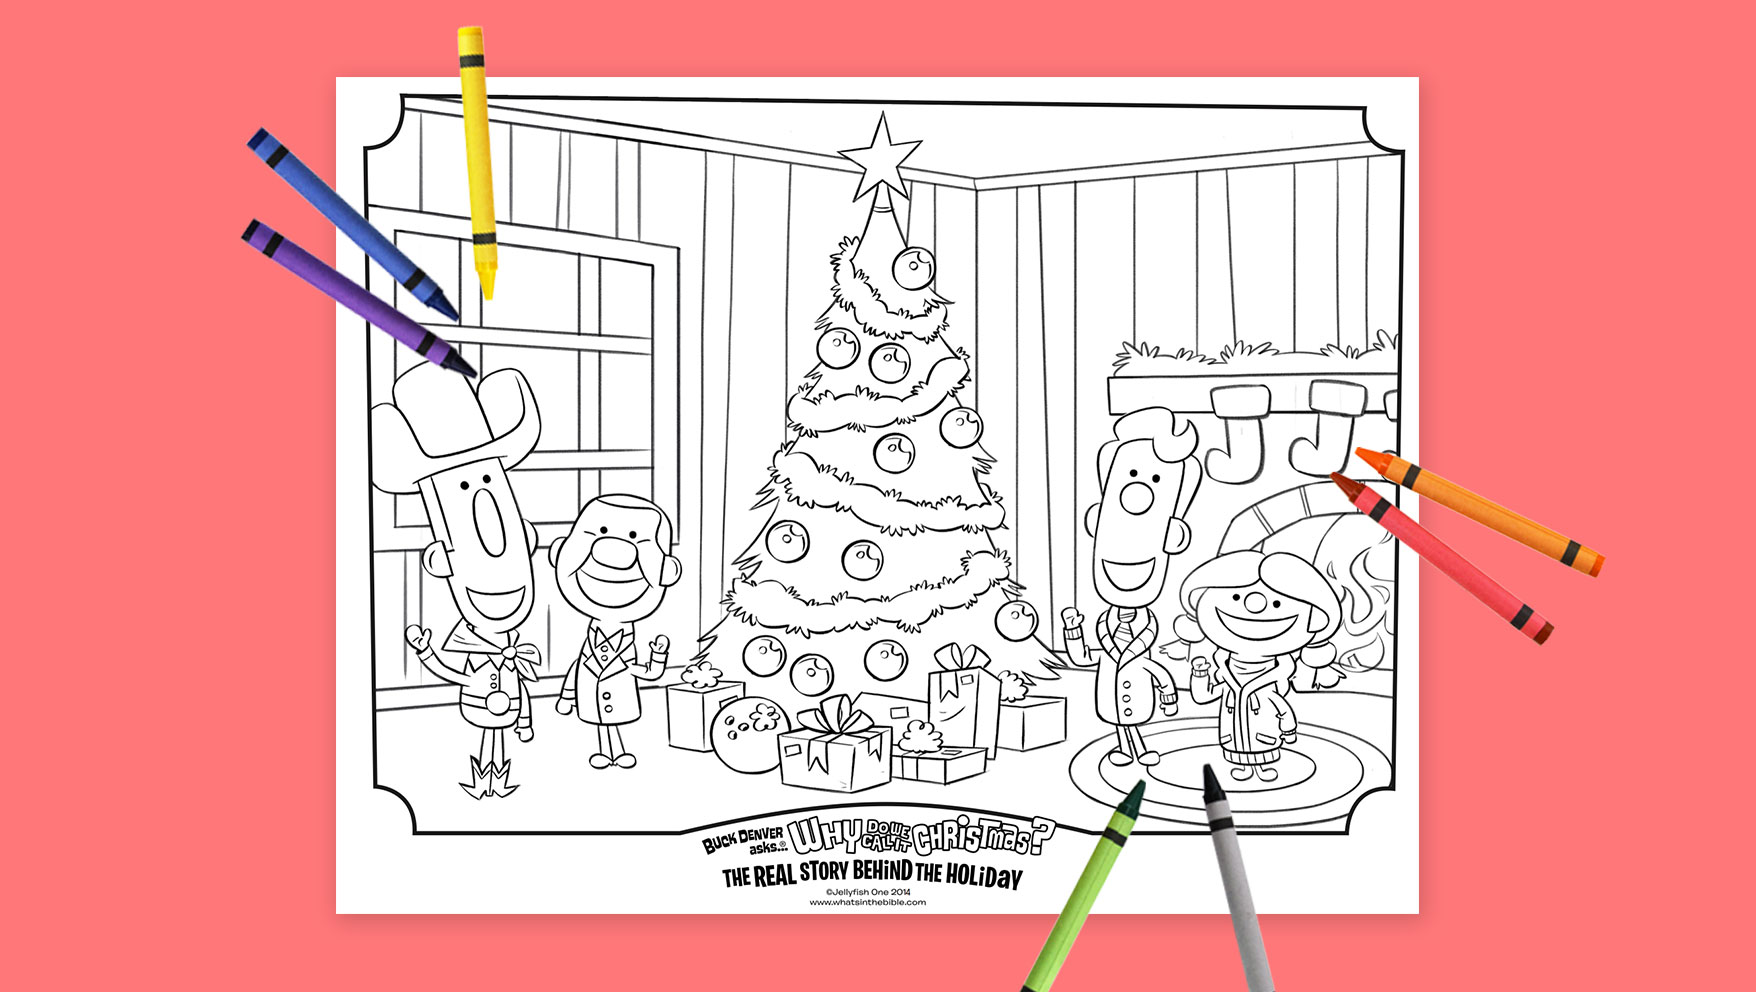 Why do we call it christmas coloring pages - In The New Book Why Do We Call It Christmas The Real Story Behind The Holiday Buck Denver And Friends Learn The History Of Christmas And How All Our